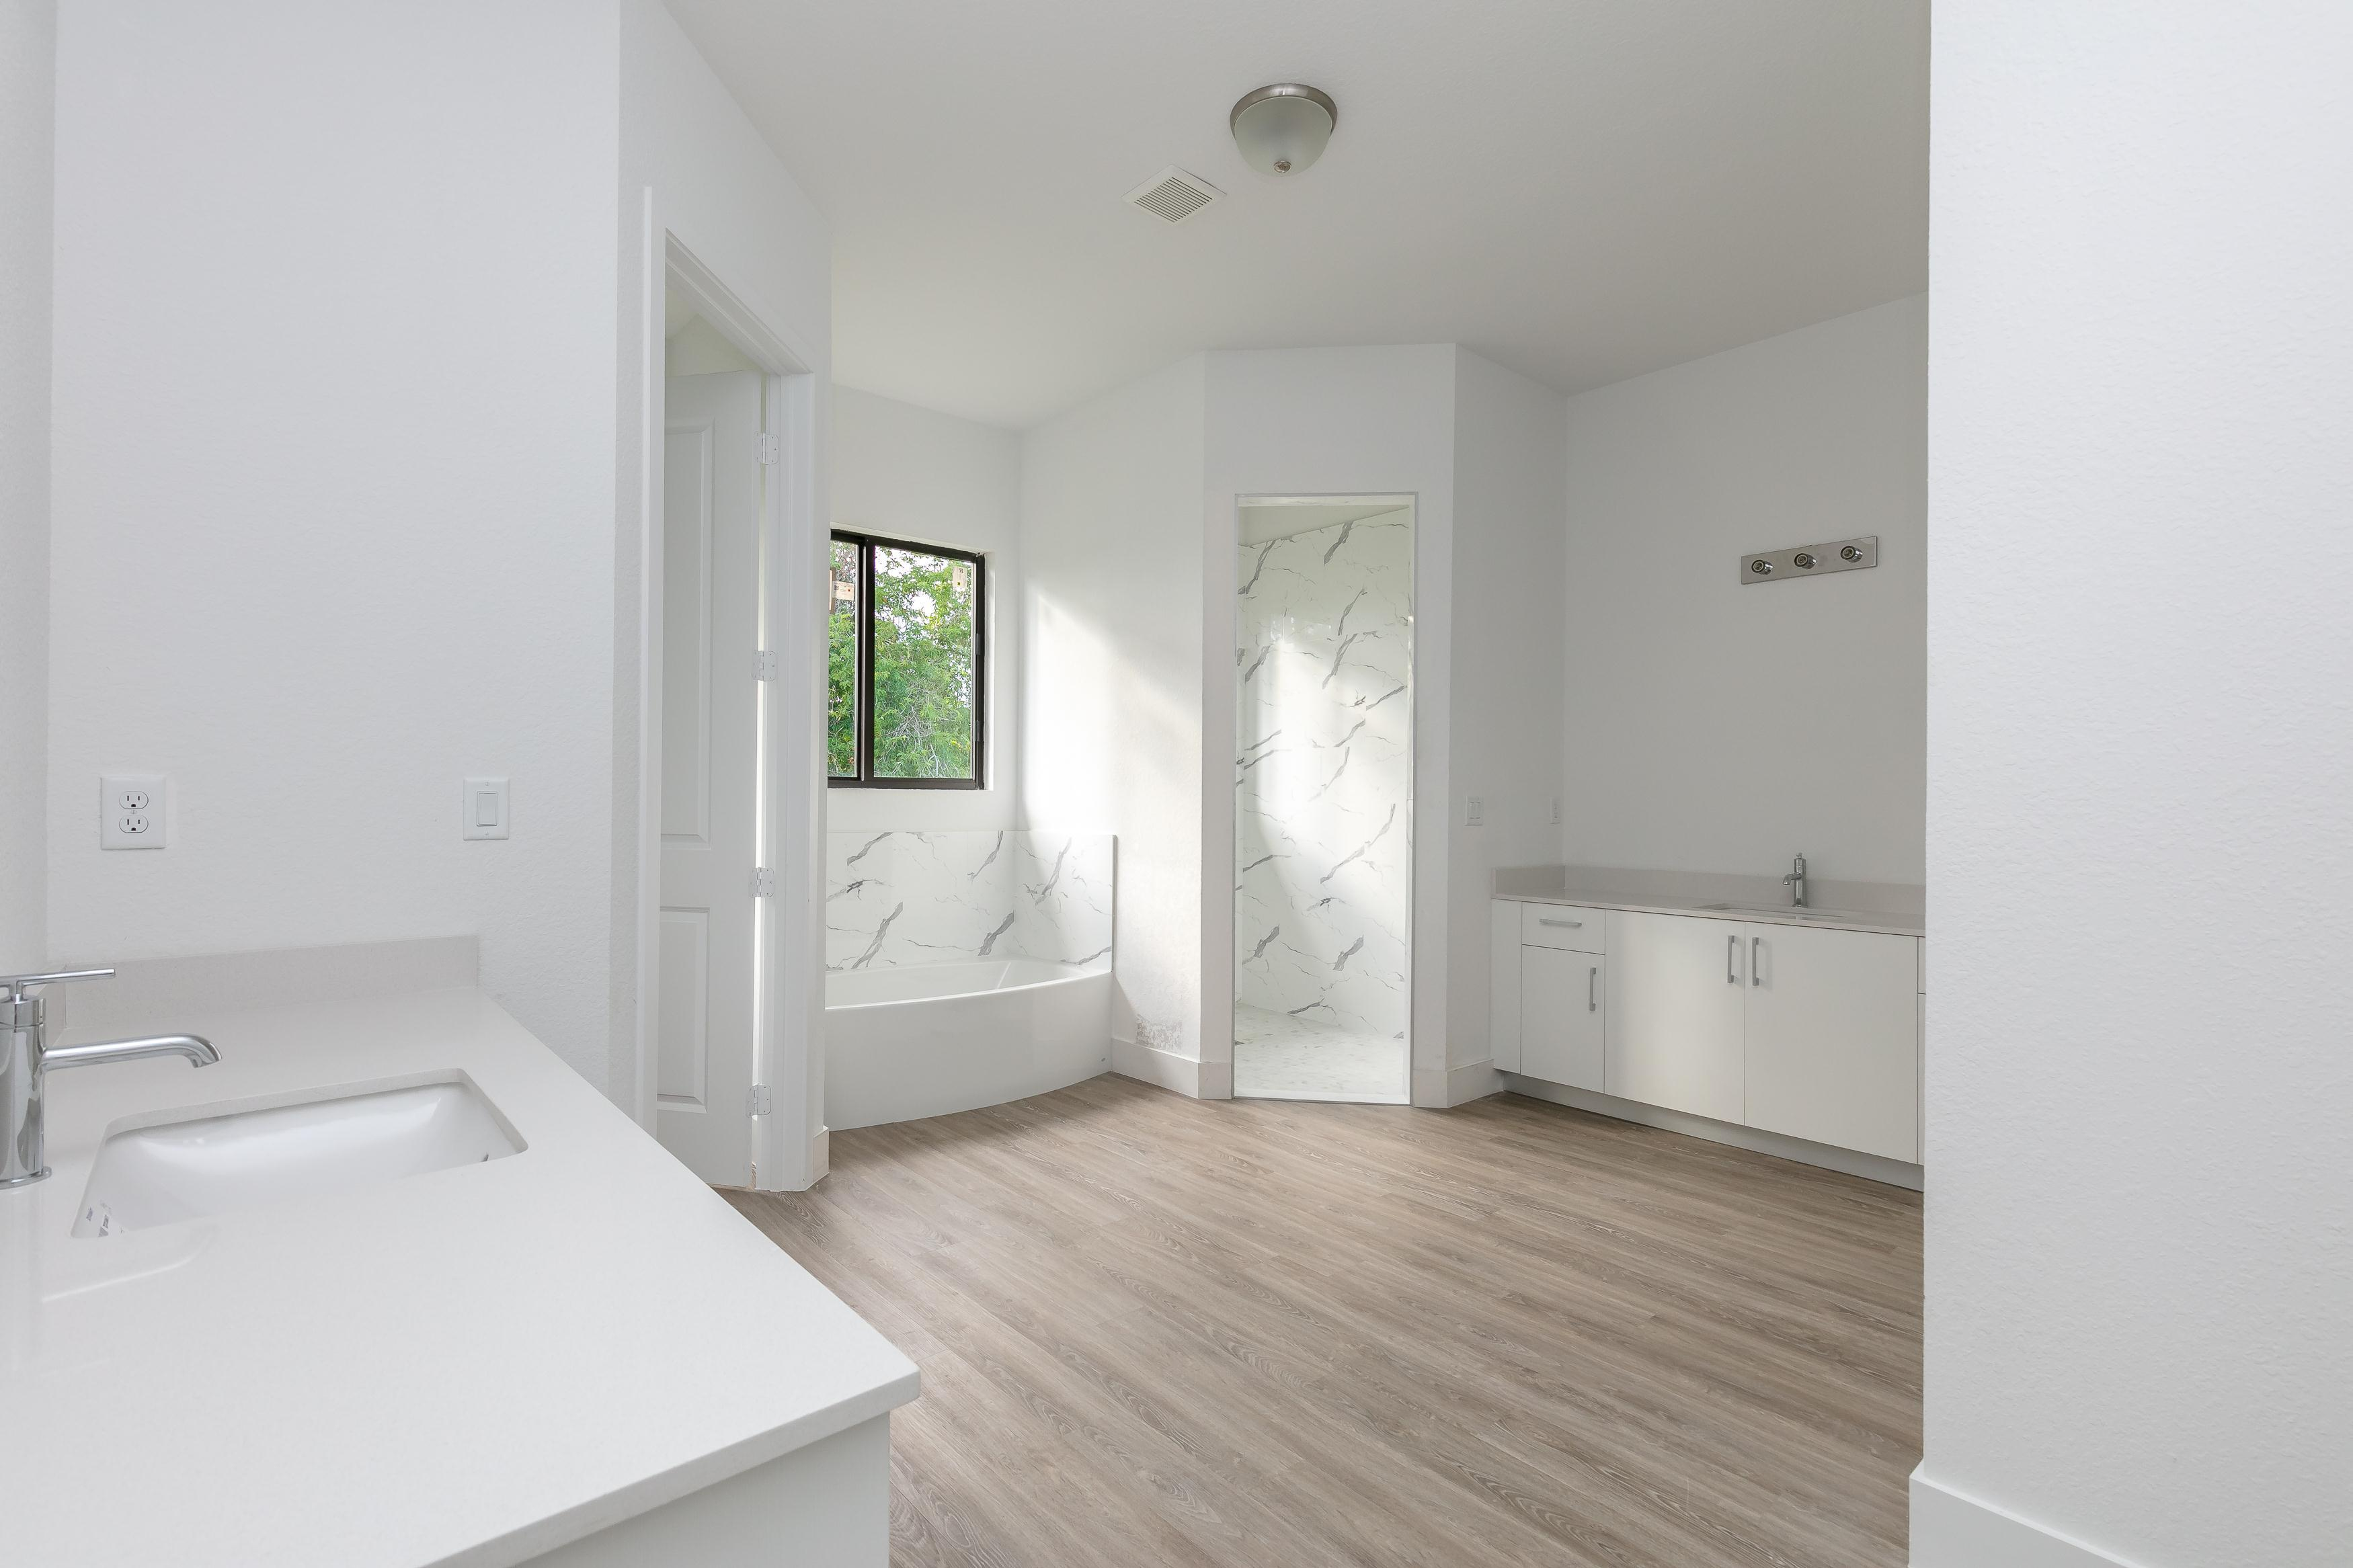 Bathroom featured in the Model B By Palmcorp Development Group in Miami-Dade County, FL